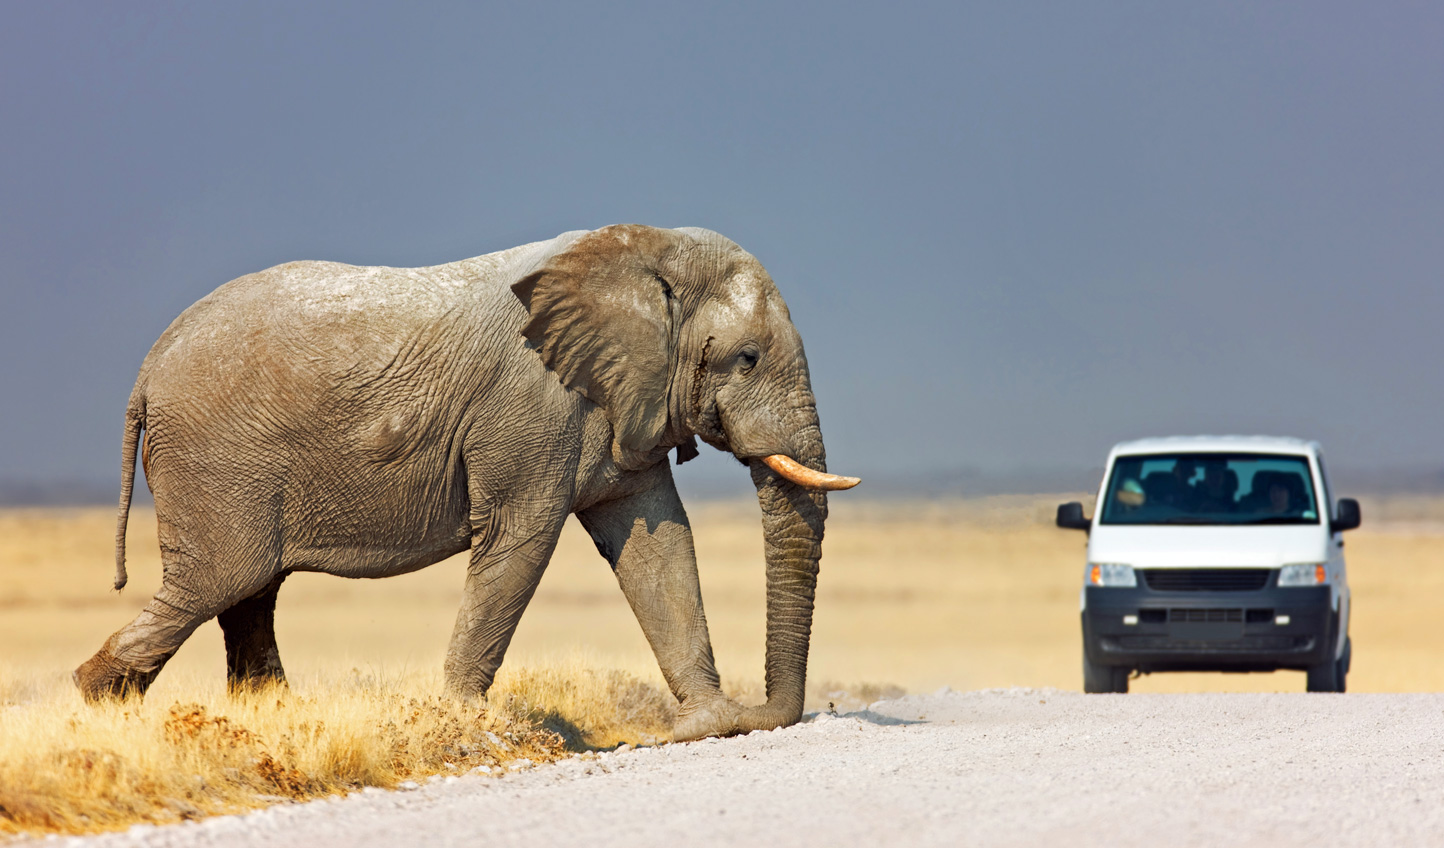 Drive across the Namibian landscapes, passing a few locals along the way